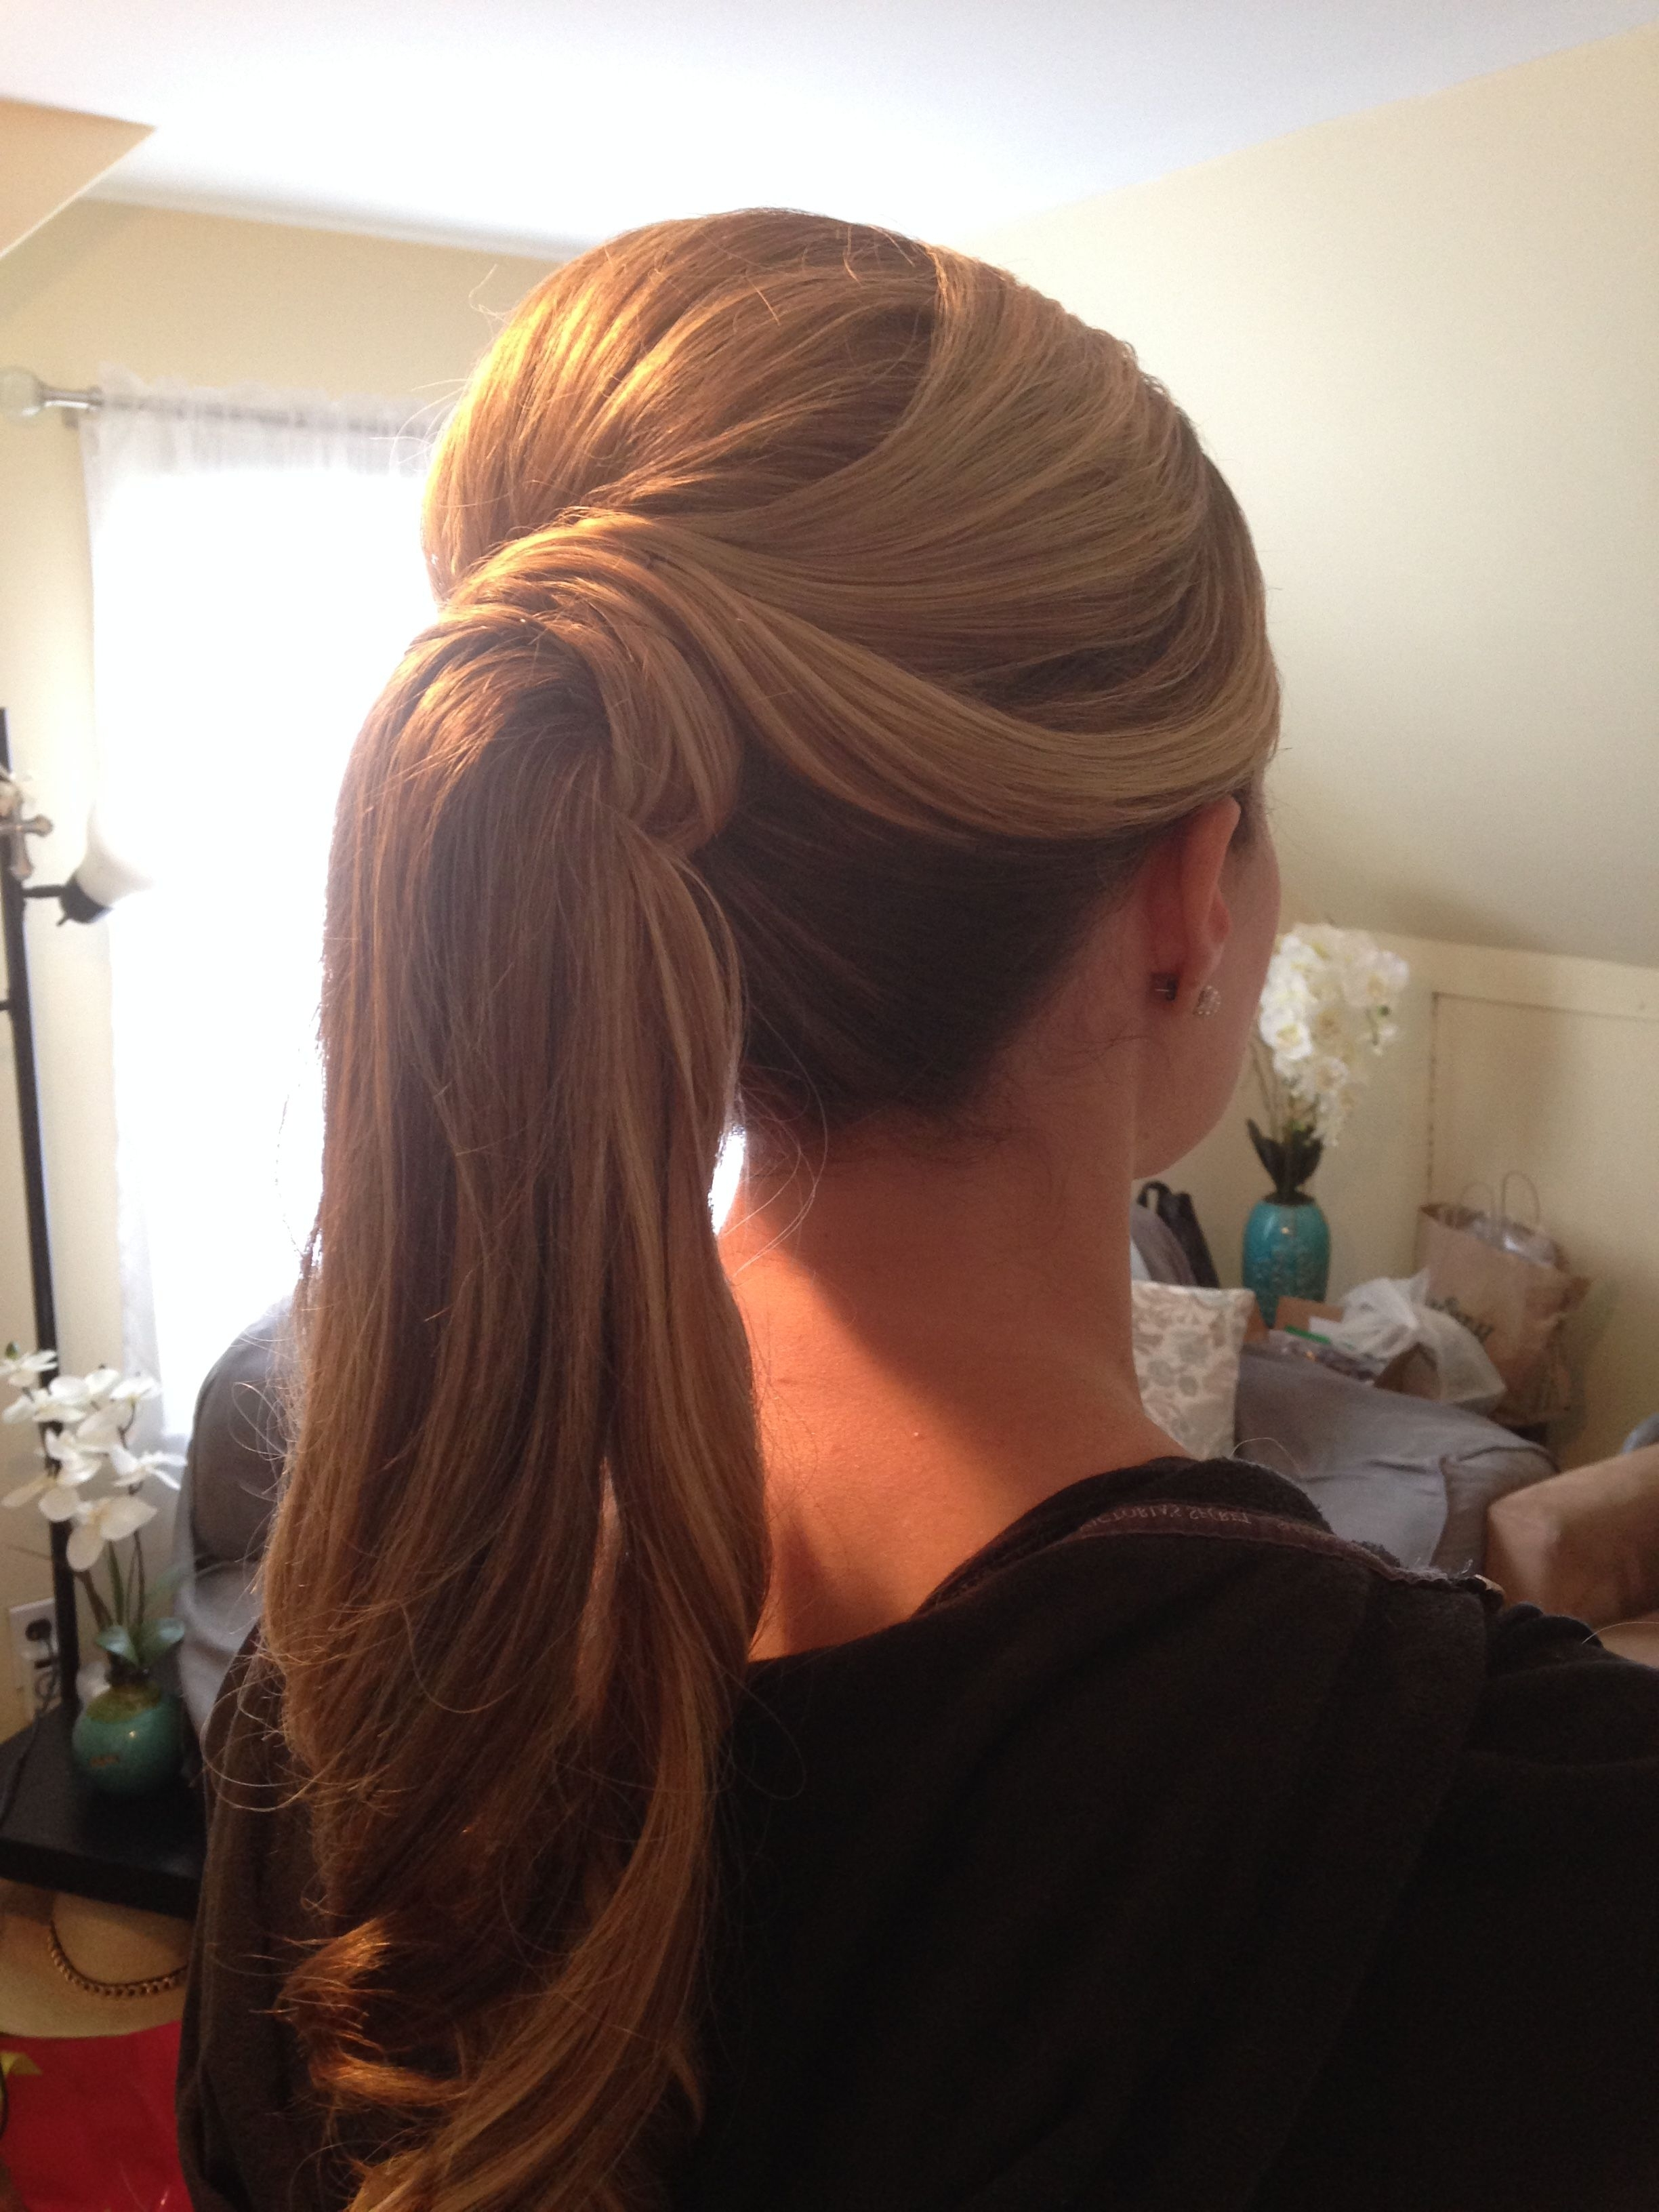 Ponytail Intended For Most Popular Classic Bridesmaid Ponytail Hairstyles (View 5 of 20)